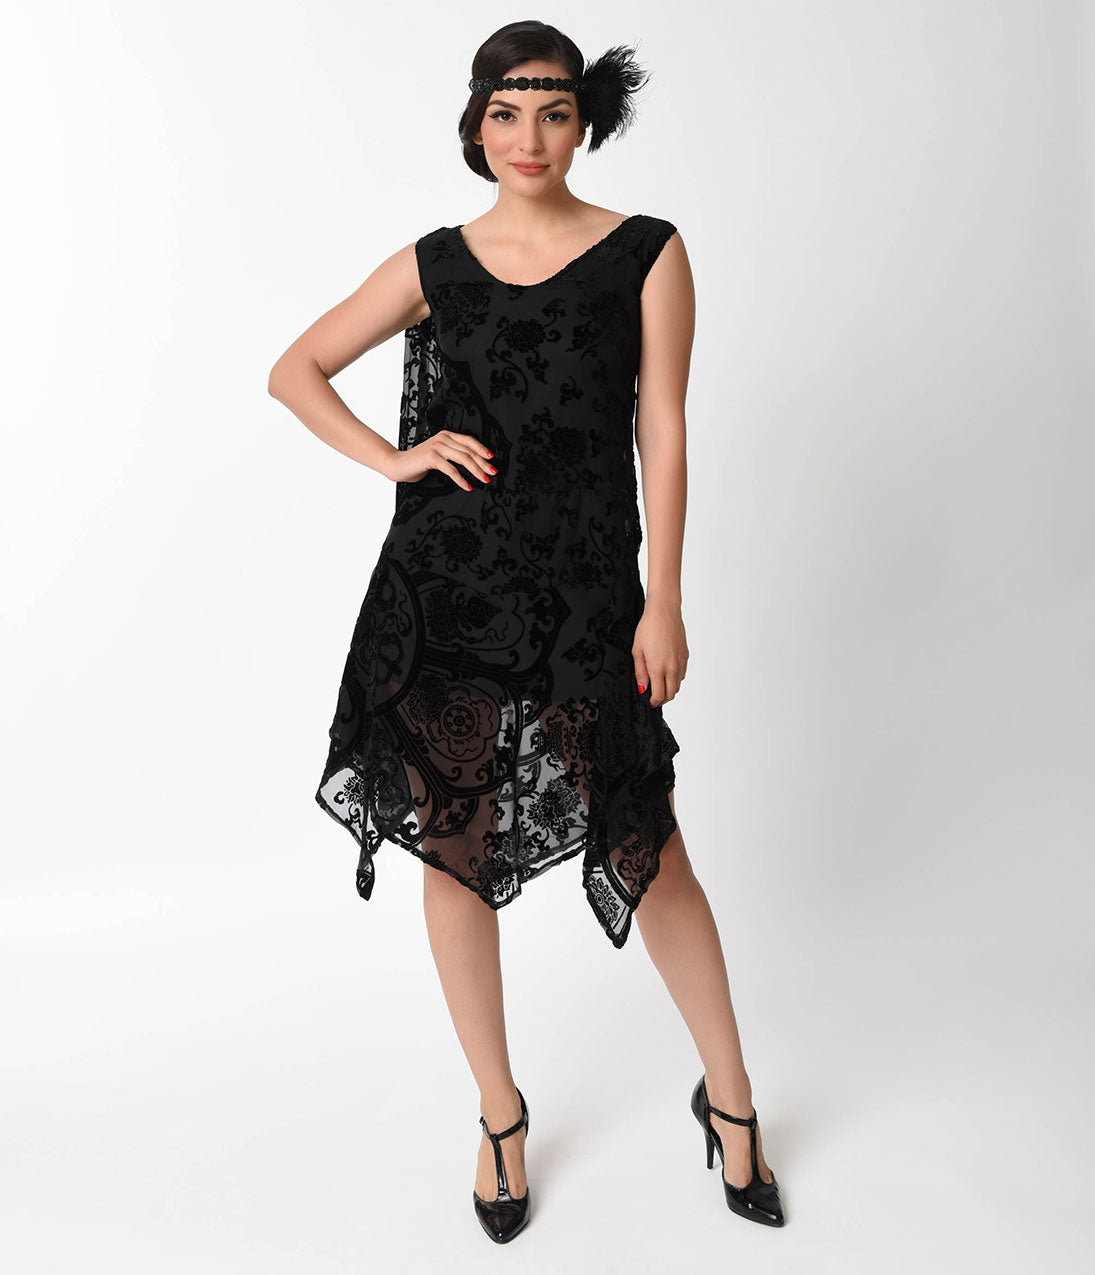 1920s Style Dresses, Flapper Dresses 1920S Style Black Burnout Velvet Flapper Dress $90.00 AT vintagedancer.com